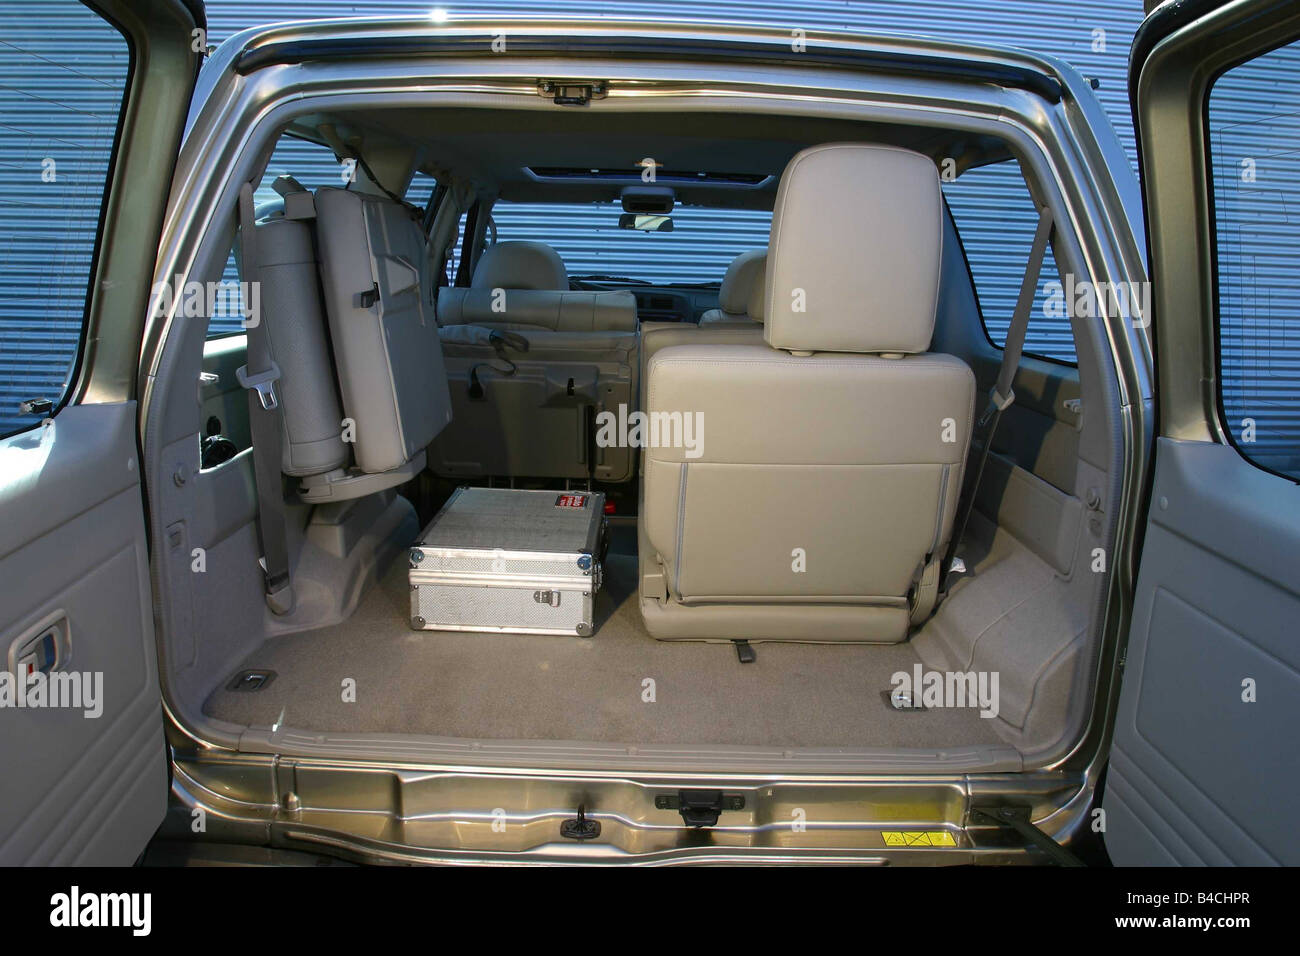 Car, Nissan Patrol, cross country vehicle, model year 1997-, silver-beige, fawn, view into boot, technique/accessory, - Stock Image